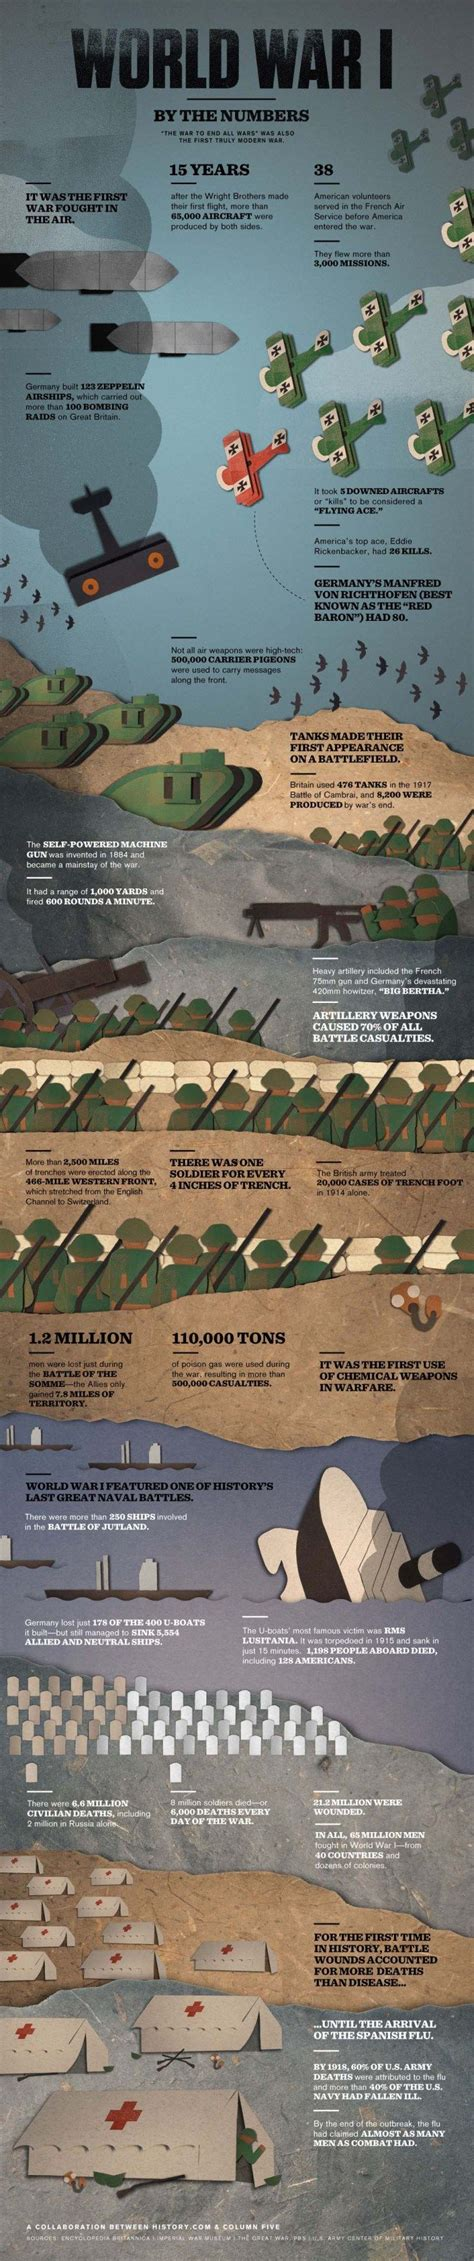 17 Best Images About World War I Infographics On Pinterest